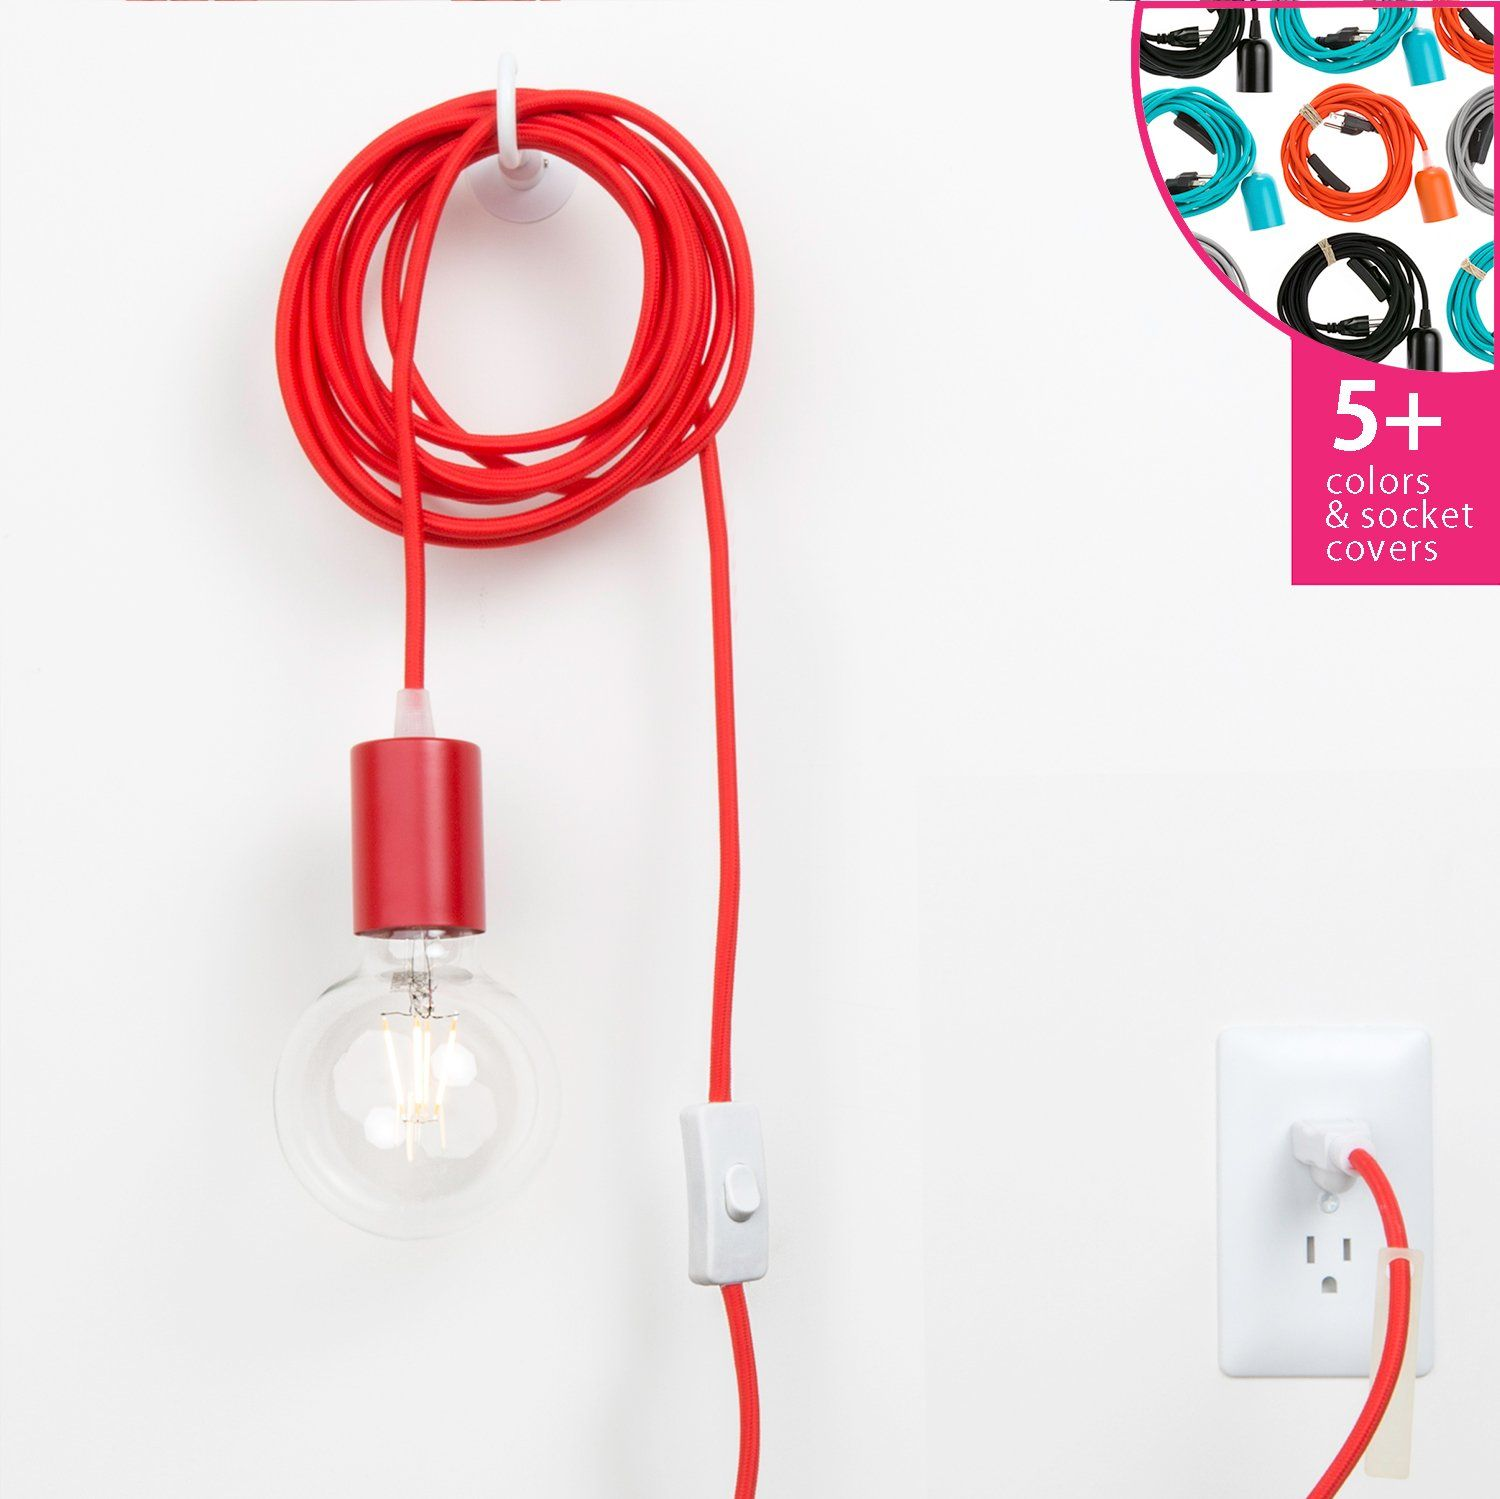 Plug-In Pendant Light Cord Set - Metal Socket Cover | Color Cord Company